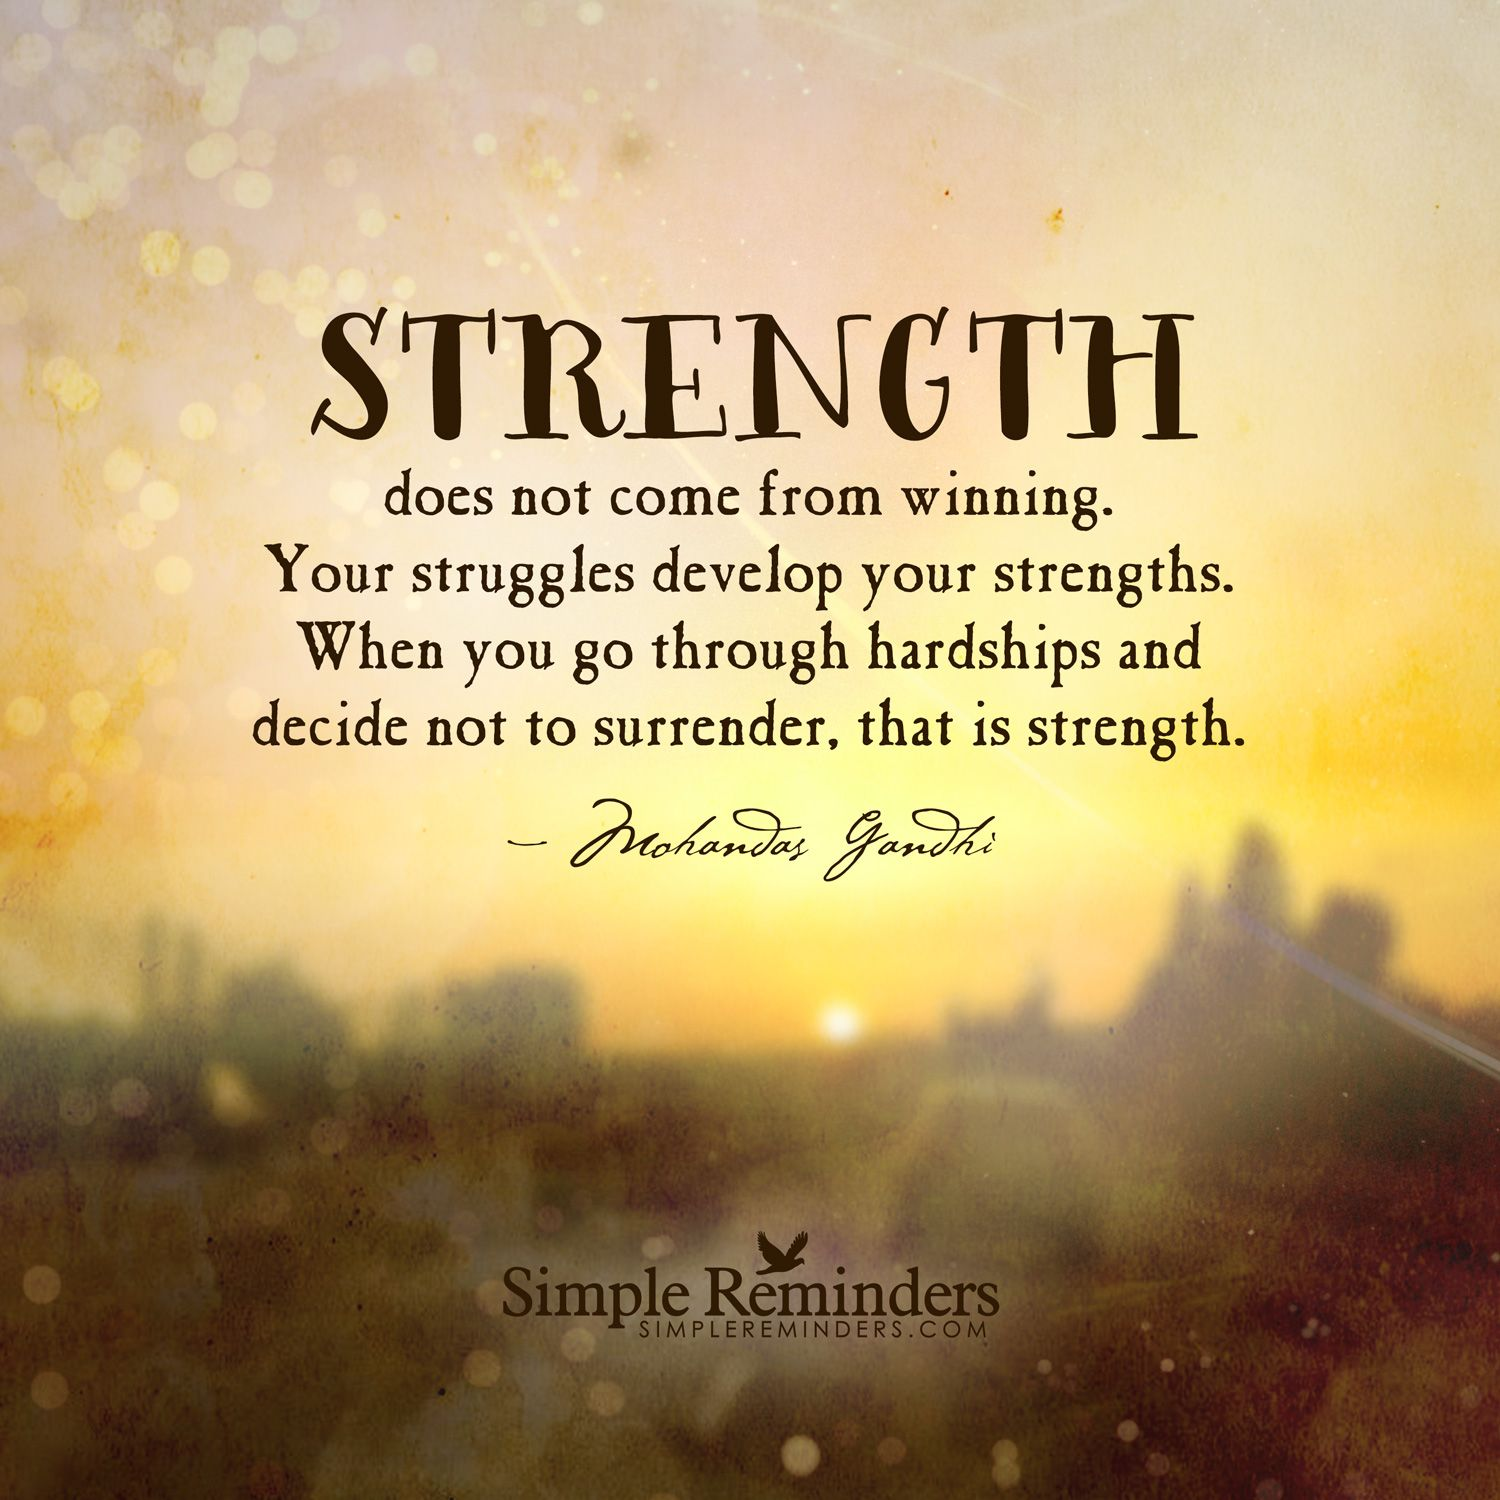 Quote by mohandas gandhi strength does not come from winning your struggles develop your strengths when you go through hardships and decide not to